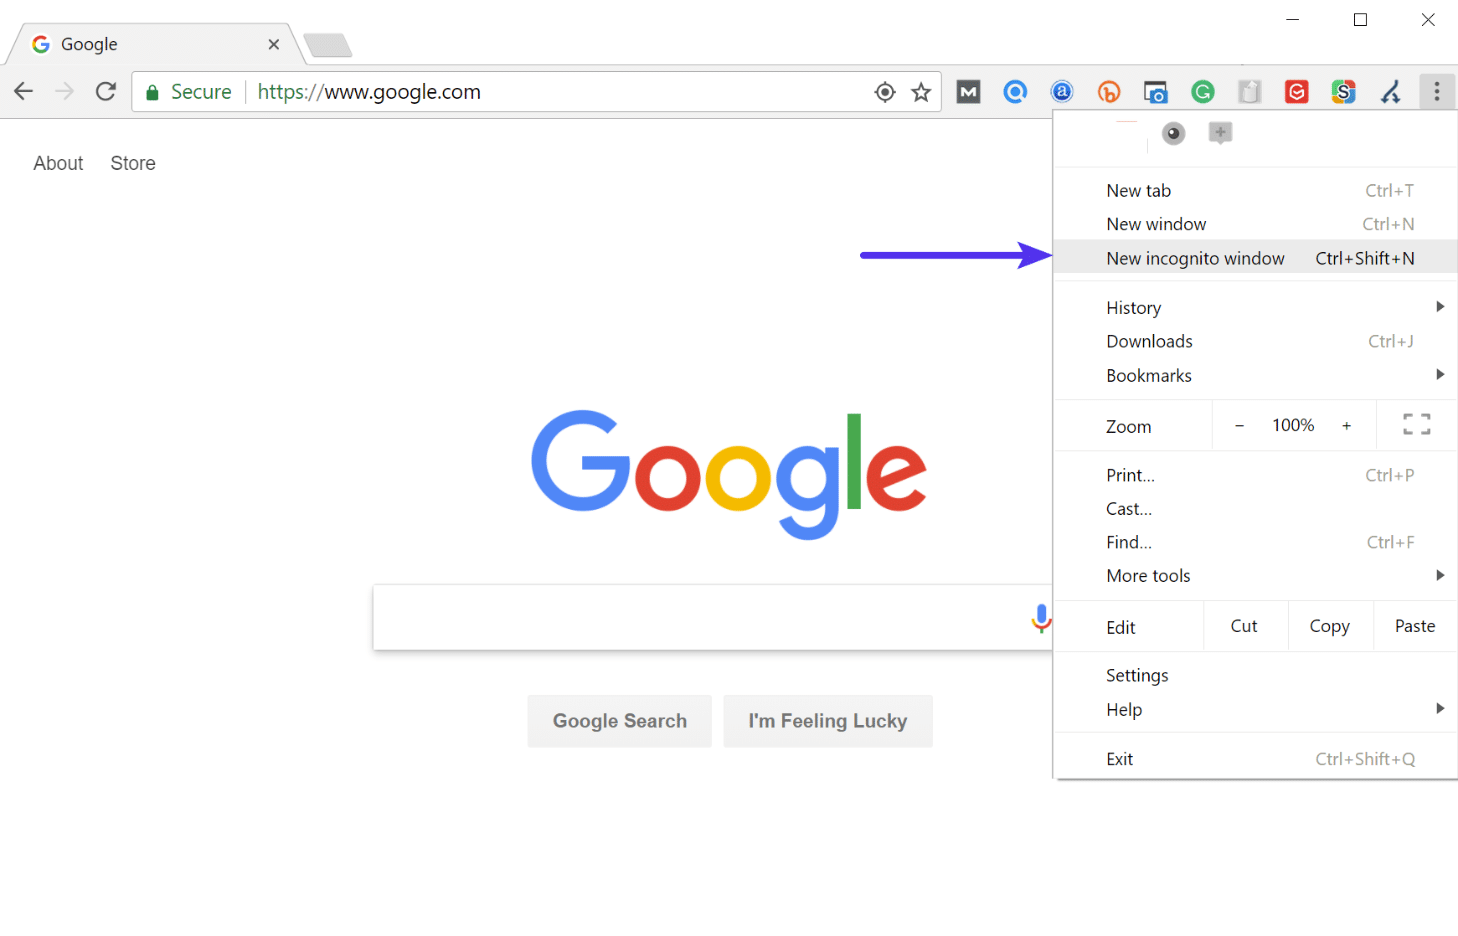 Open Chrome in Incognito mode